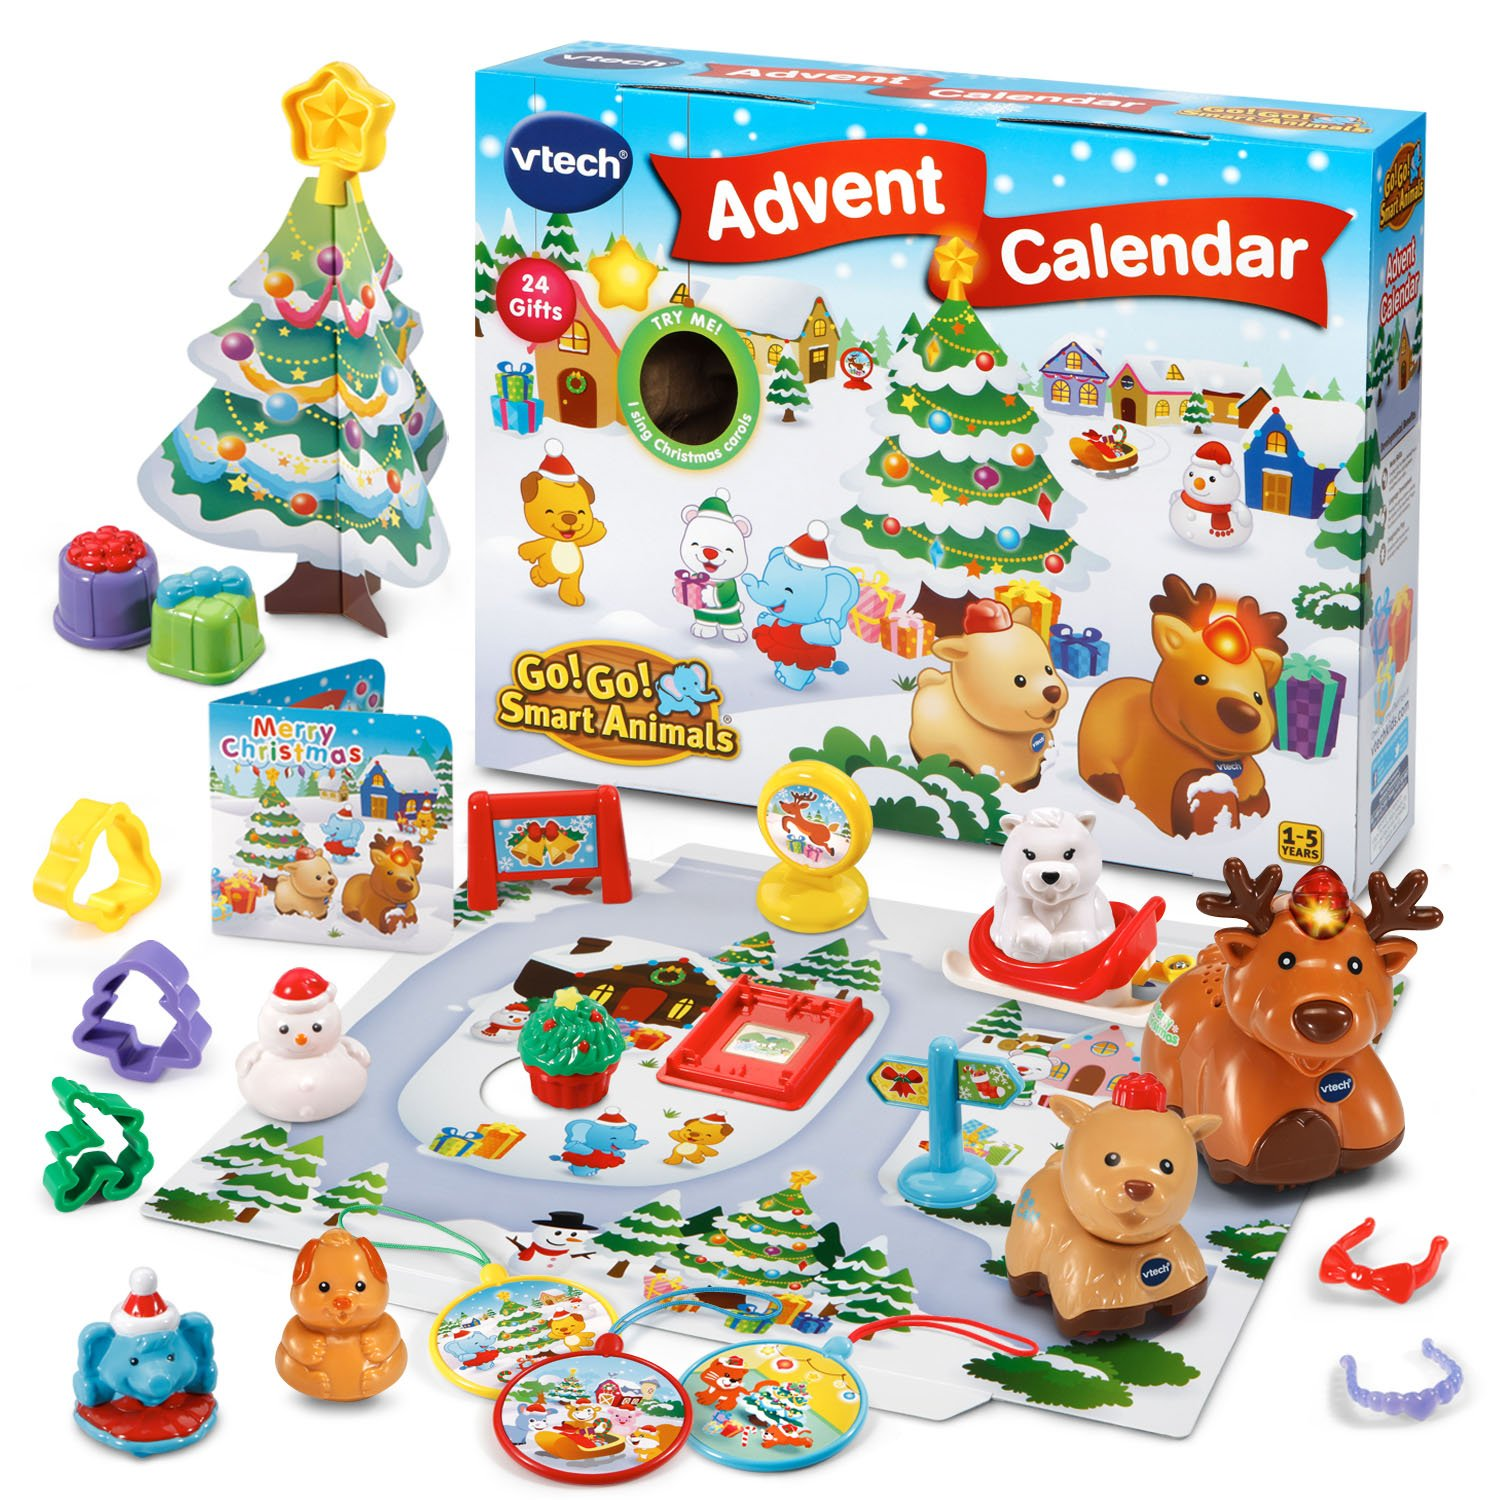 VTech Go! Go! Smart Animals - Advent Calendar 2018